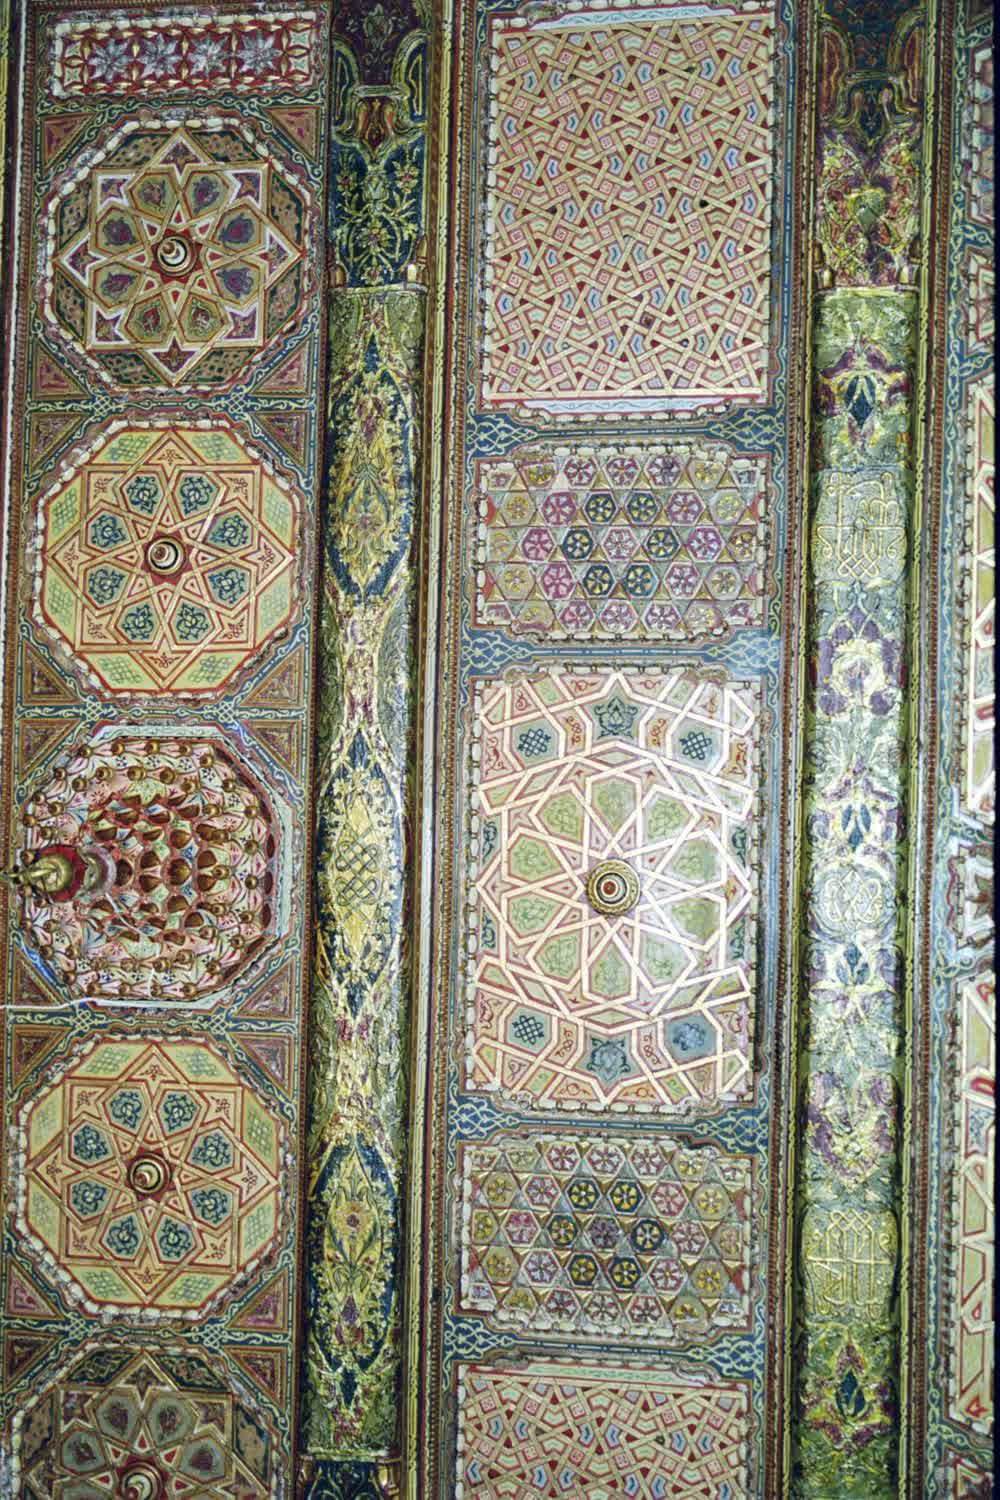 title: Luxury Mosaic Designs of the Royal Beiteddine Palace